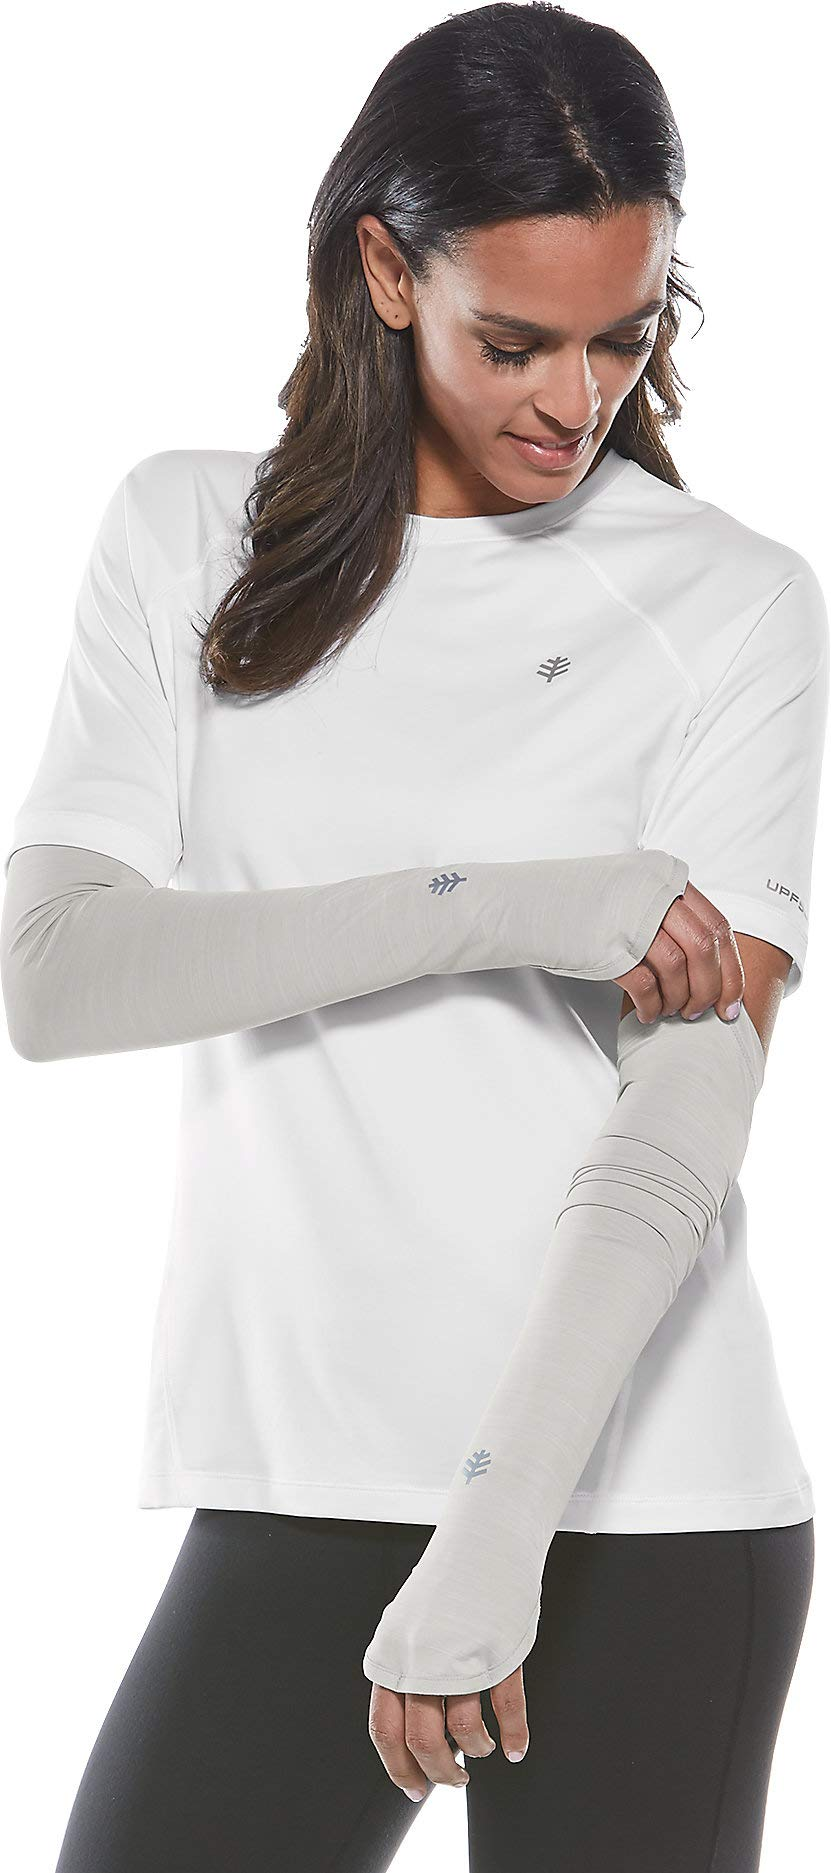 Coolibar UPF 50+ Women's Backspin Performance Sleeves - Sun Protective (Large/X-Large- Silver) by Coolibar